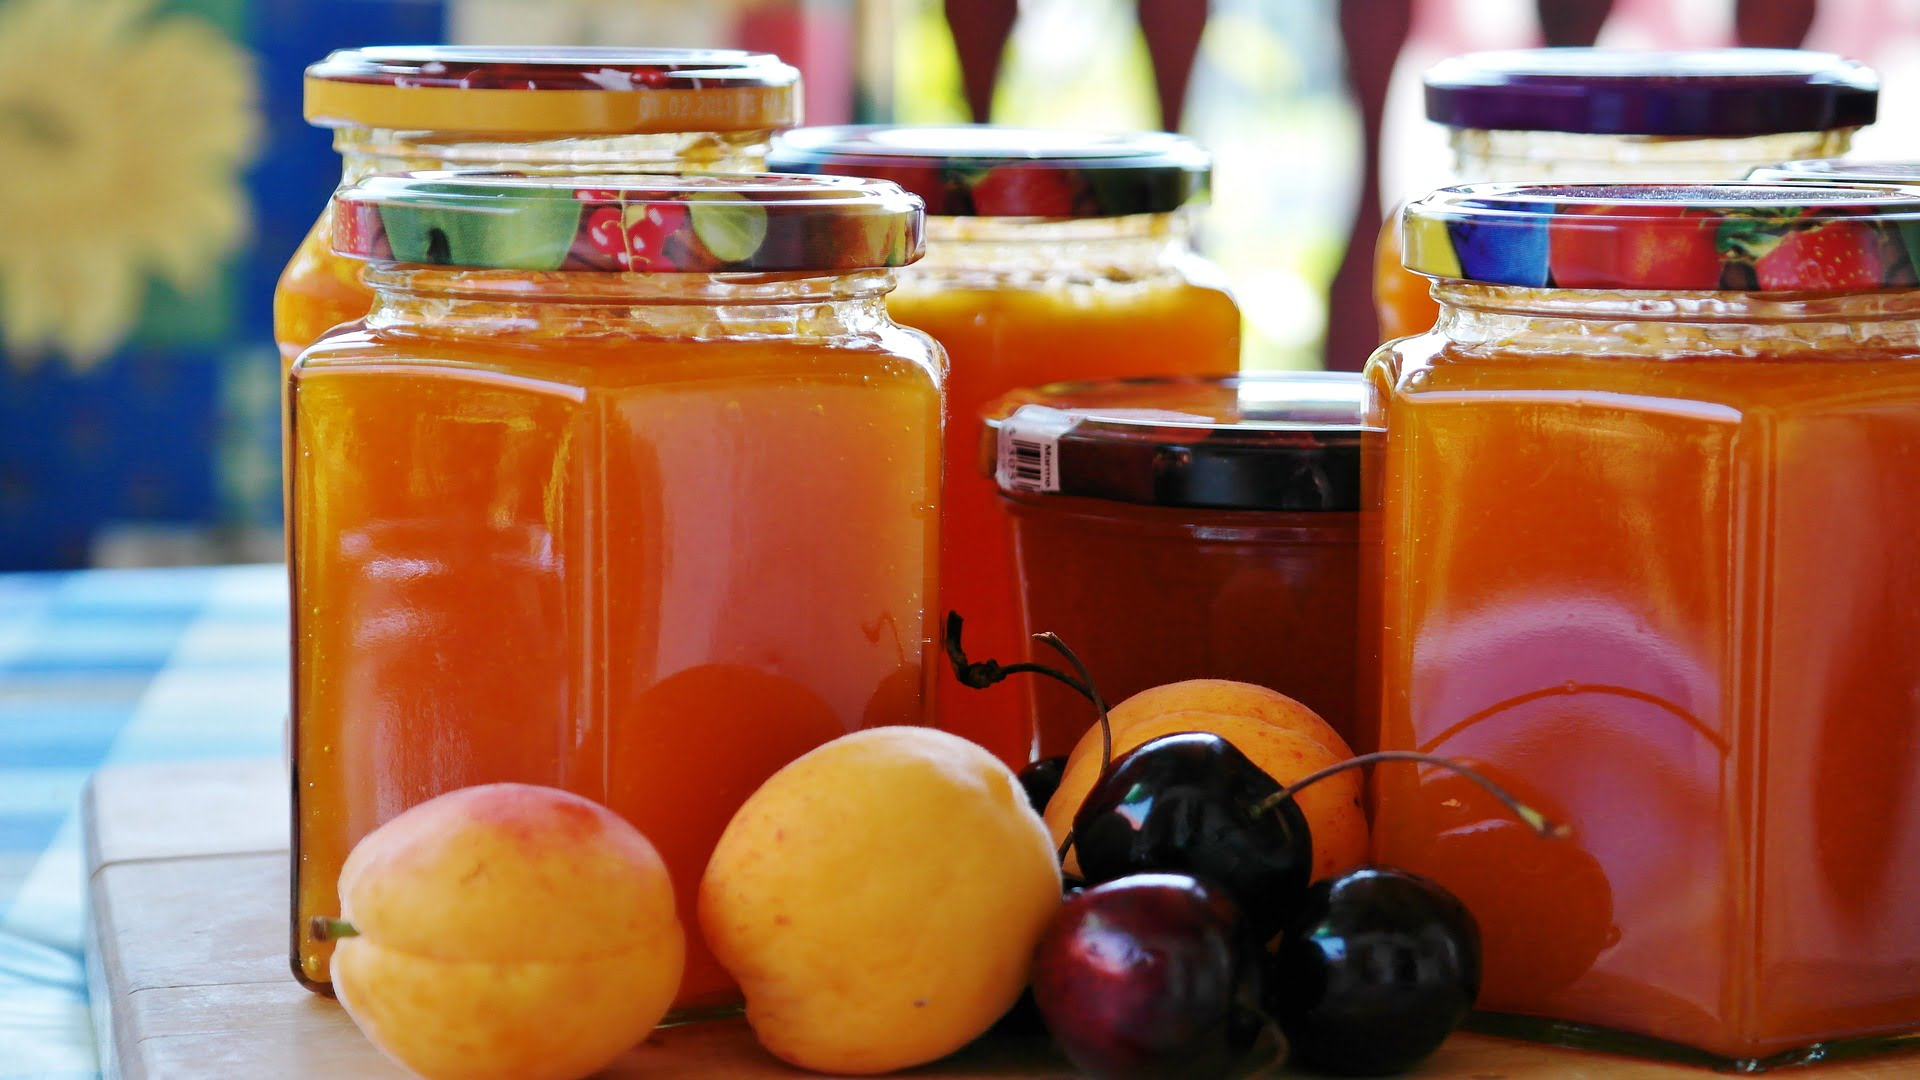 Jam Jars and Food jars